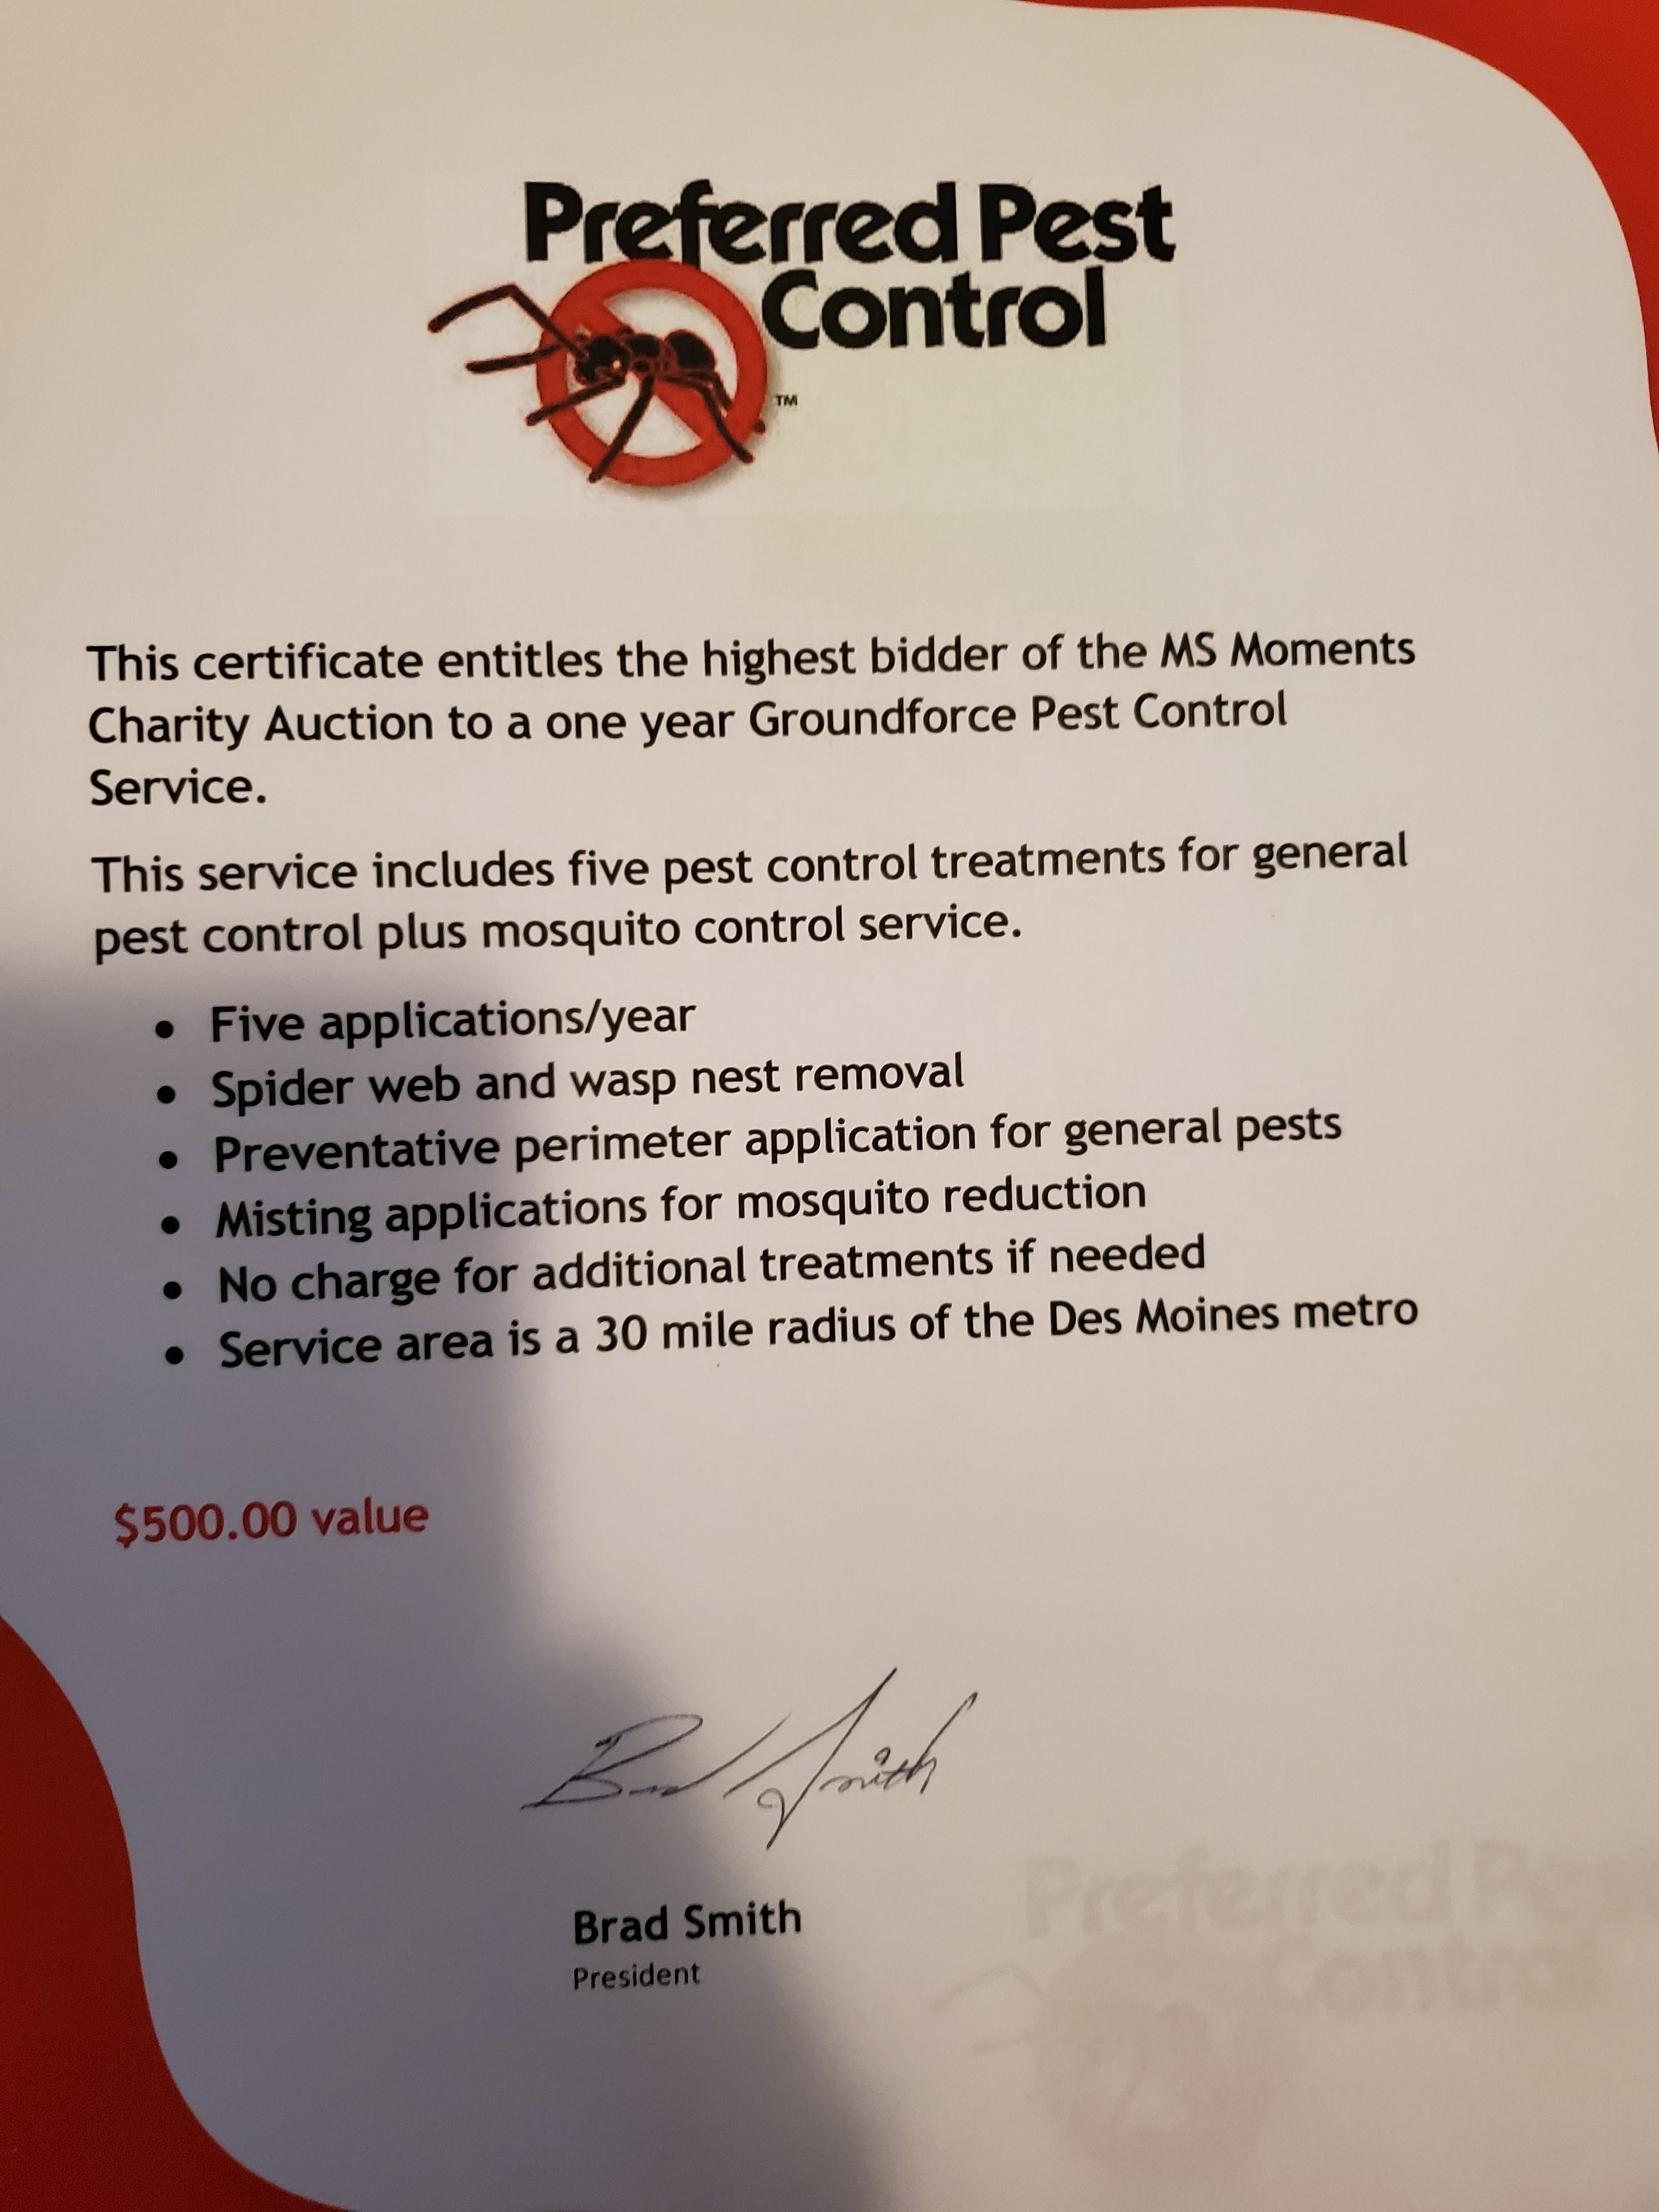 One Year of Groundforce Pest Control Service -